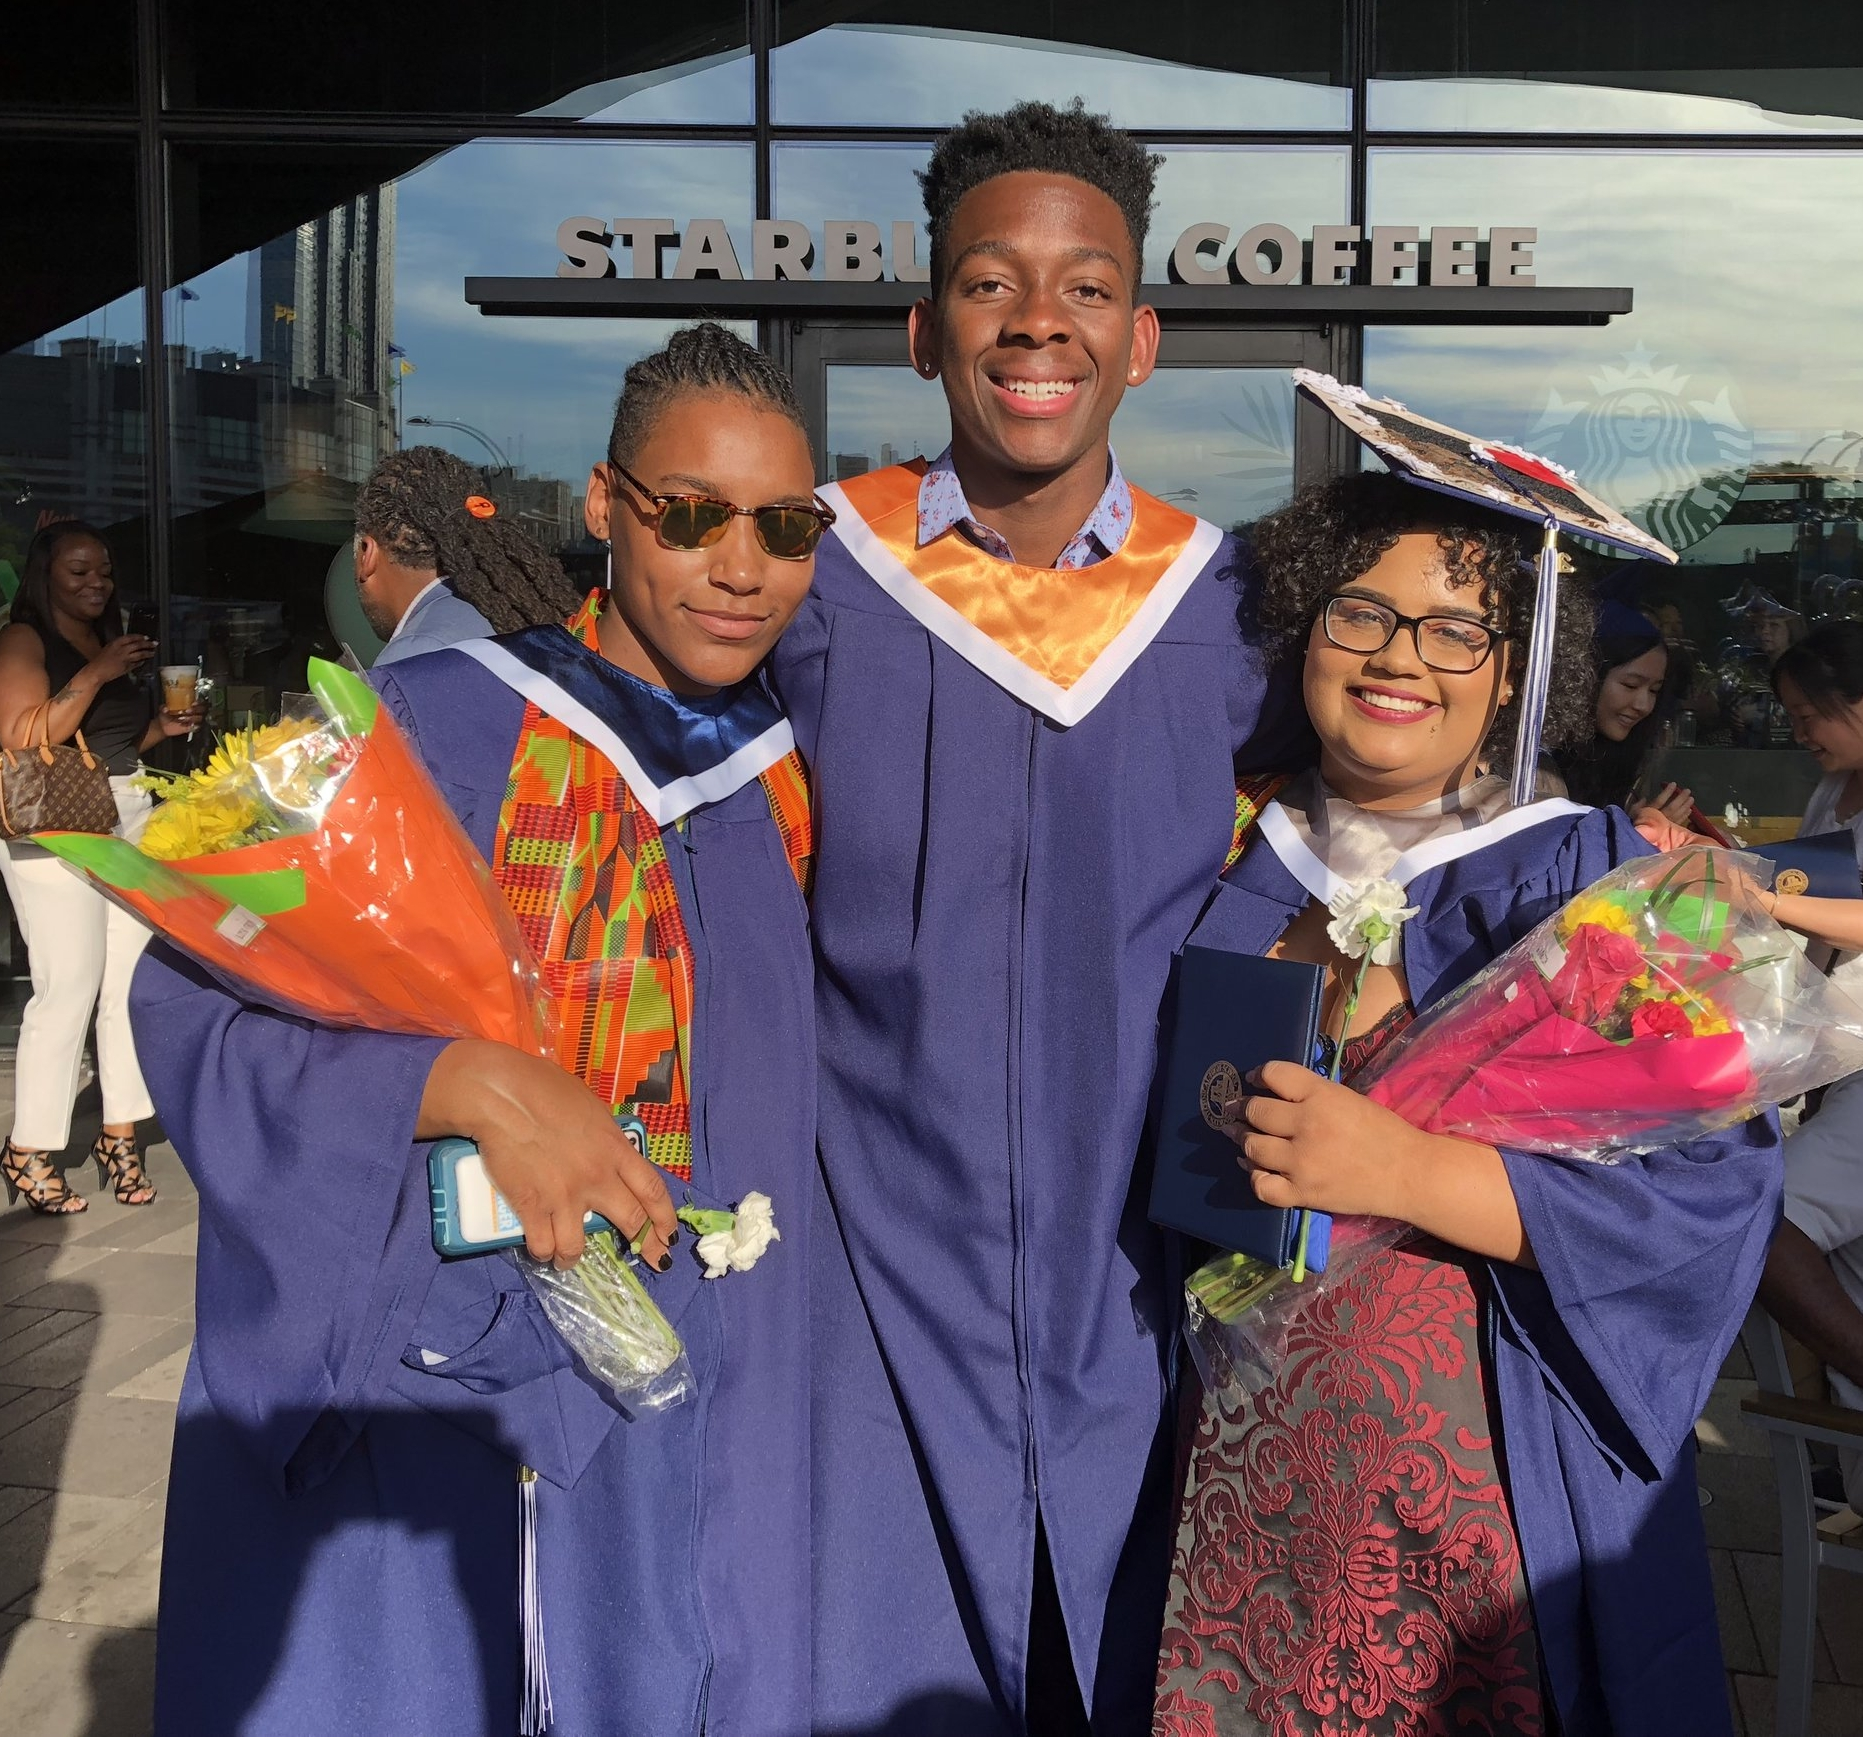 Vielka, Malachi, and Crisleidy at their graduation from Brooklyn Tech. Vielka and Crisleidy spent summer 2018 working for BEAM as Junior Counselors at BEAM 6 NYC.